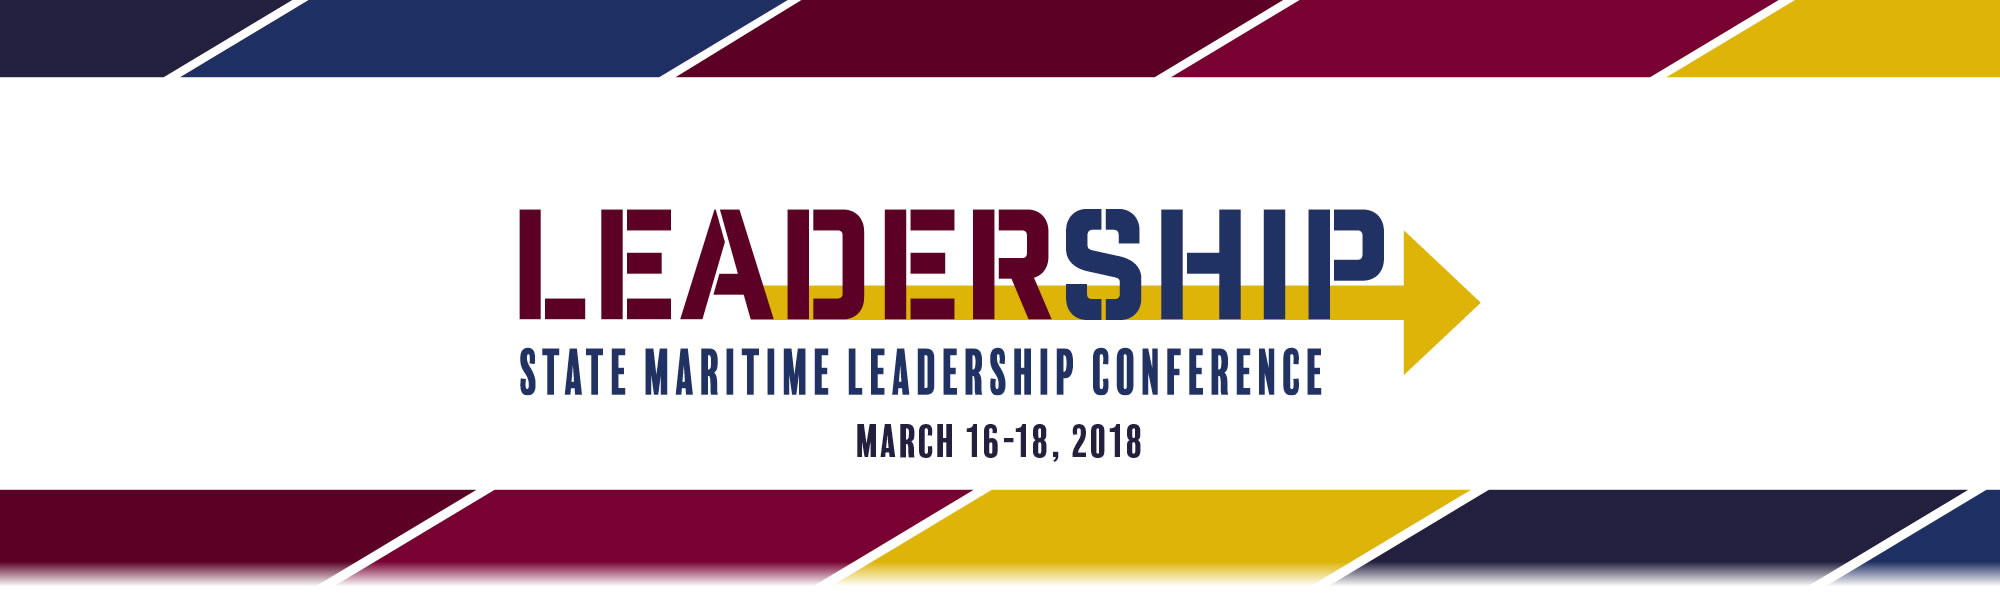 Maritime Leadership Conference